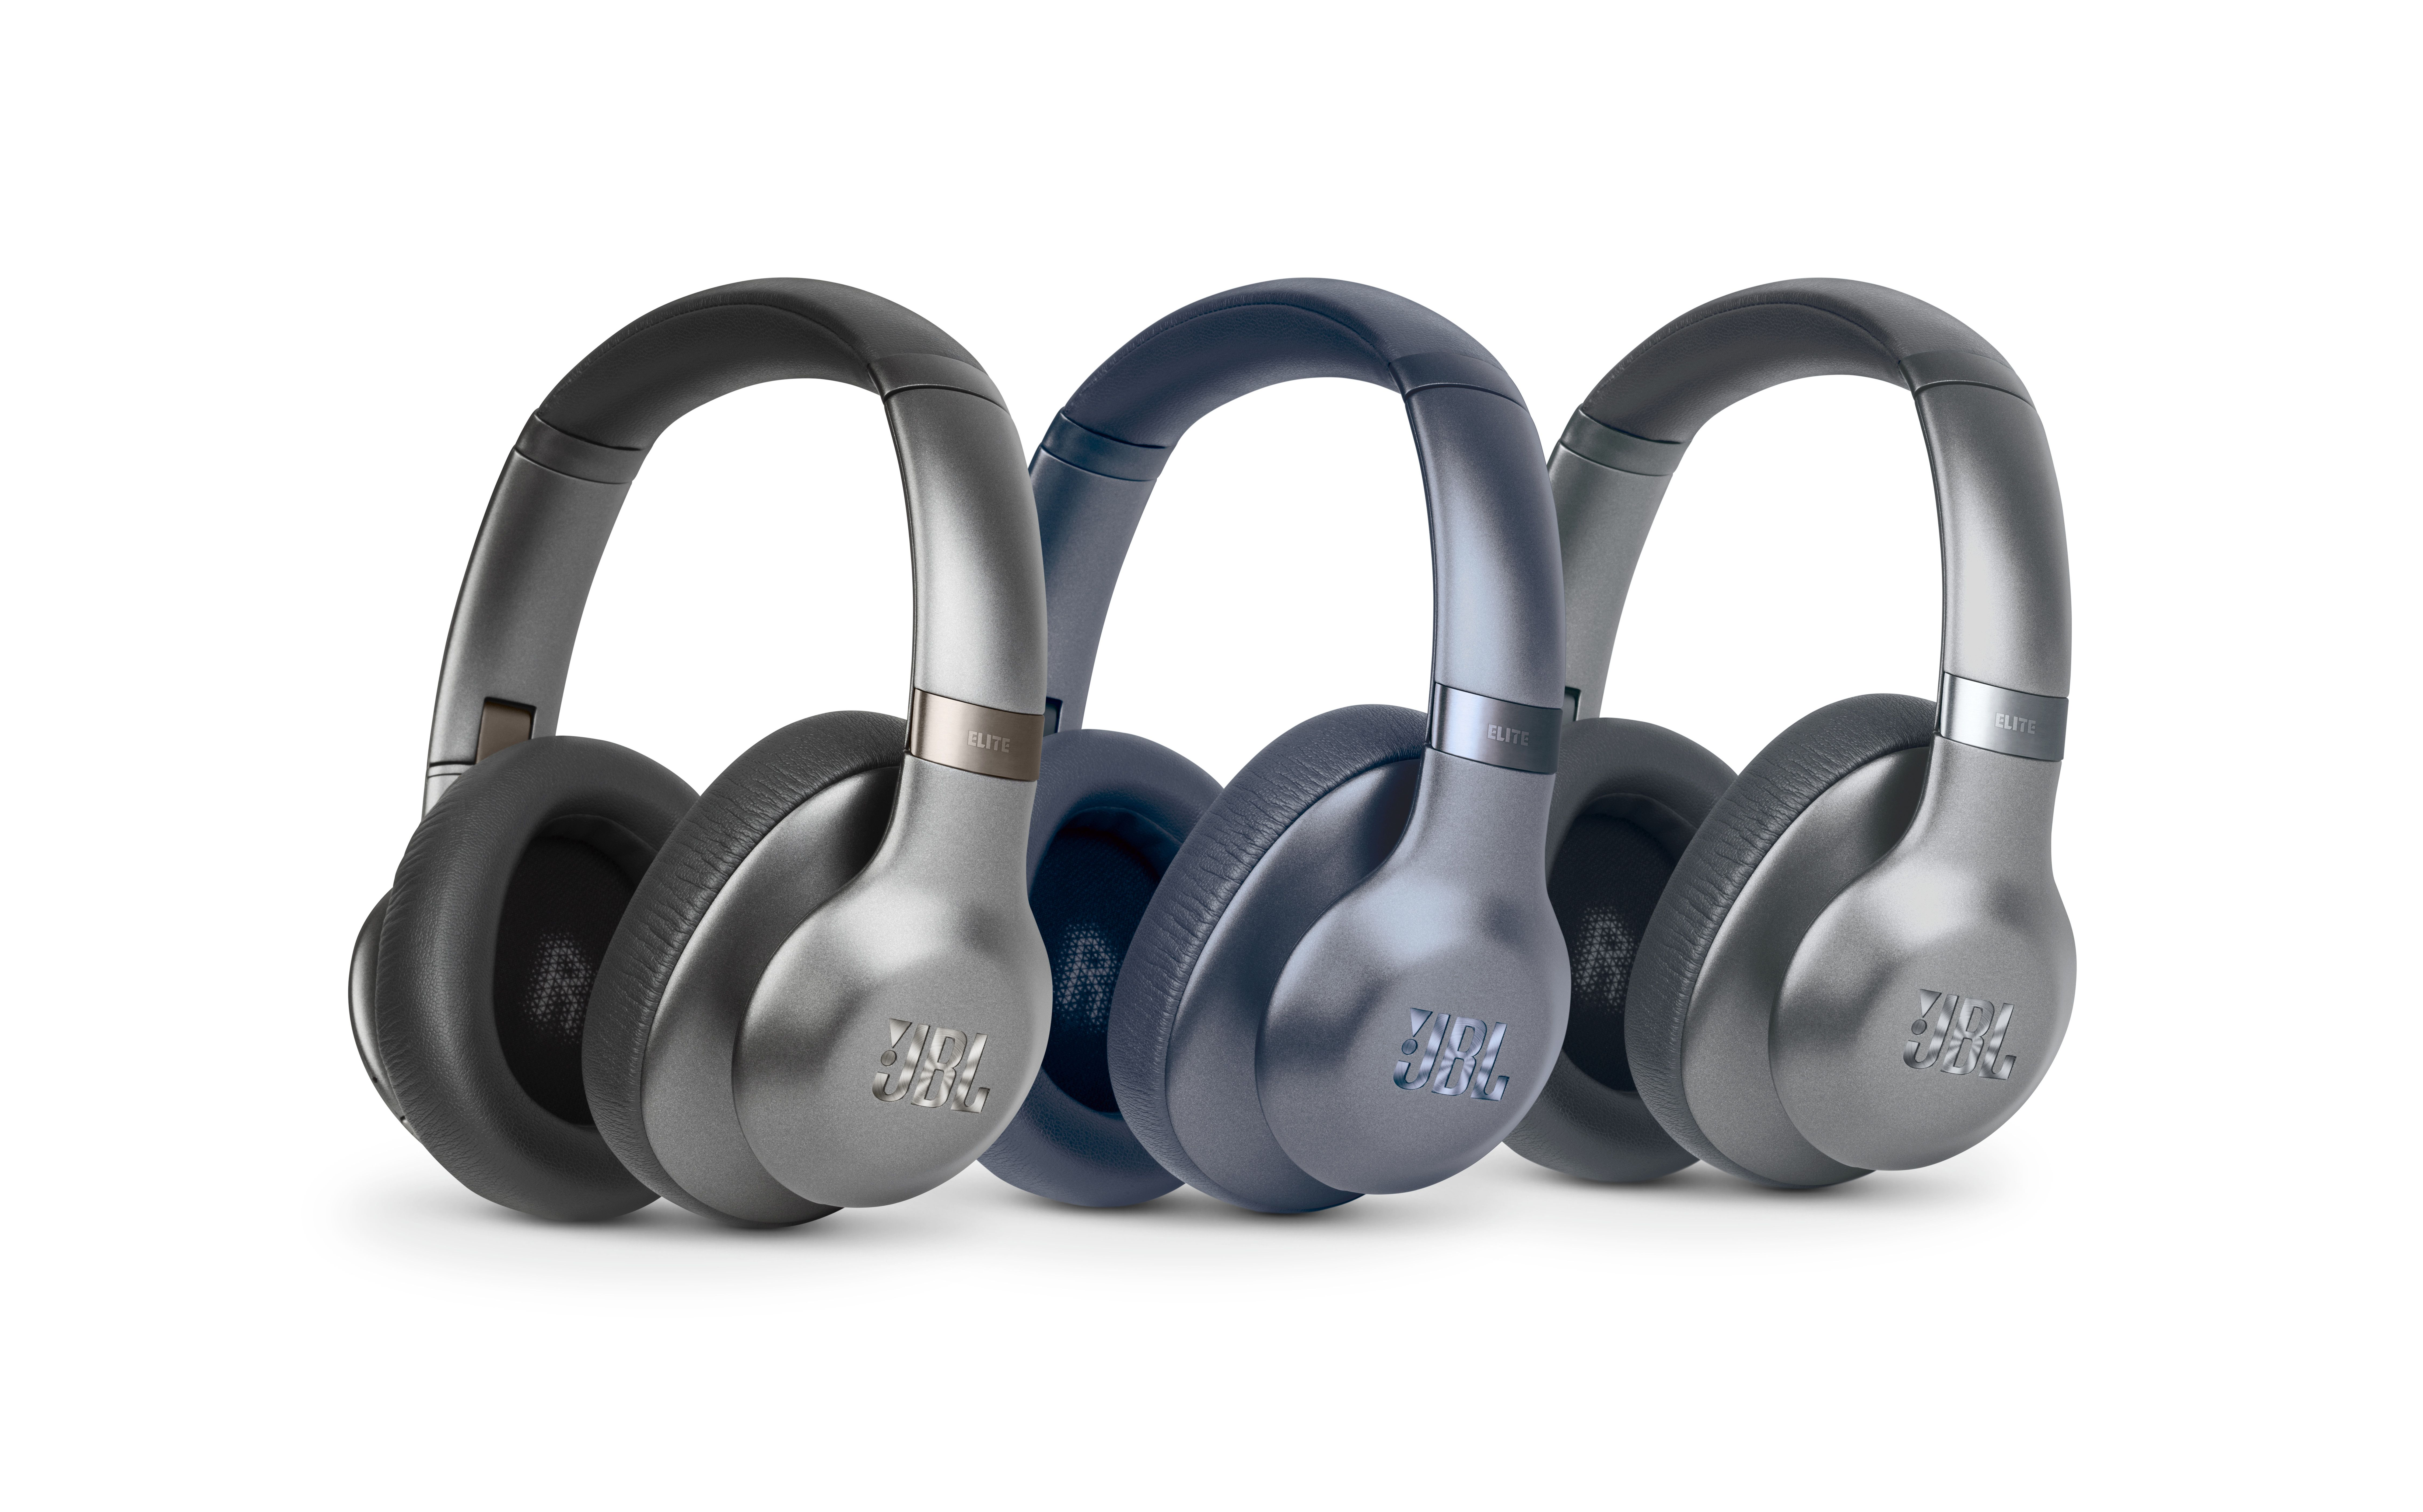 Jbl releases google assistantenabled headphones and